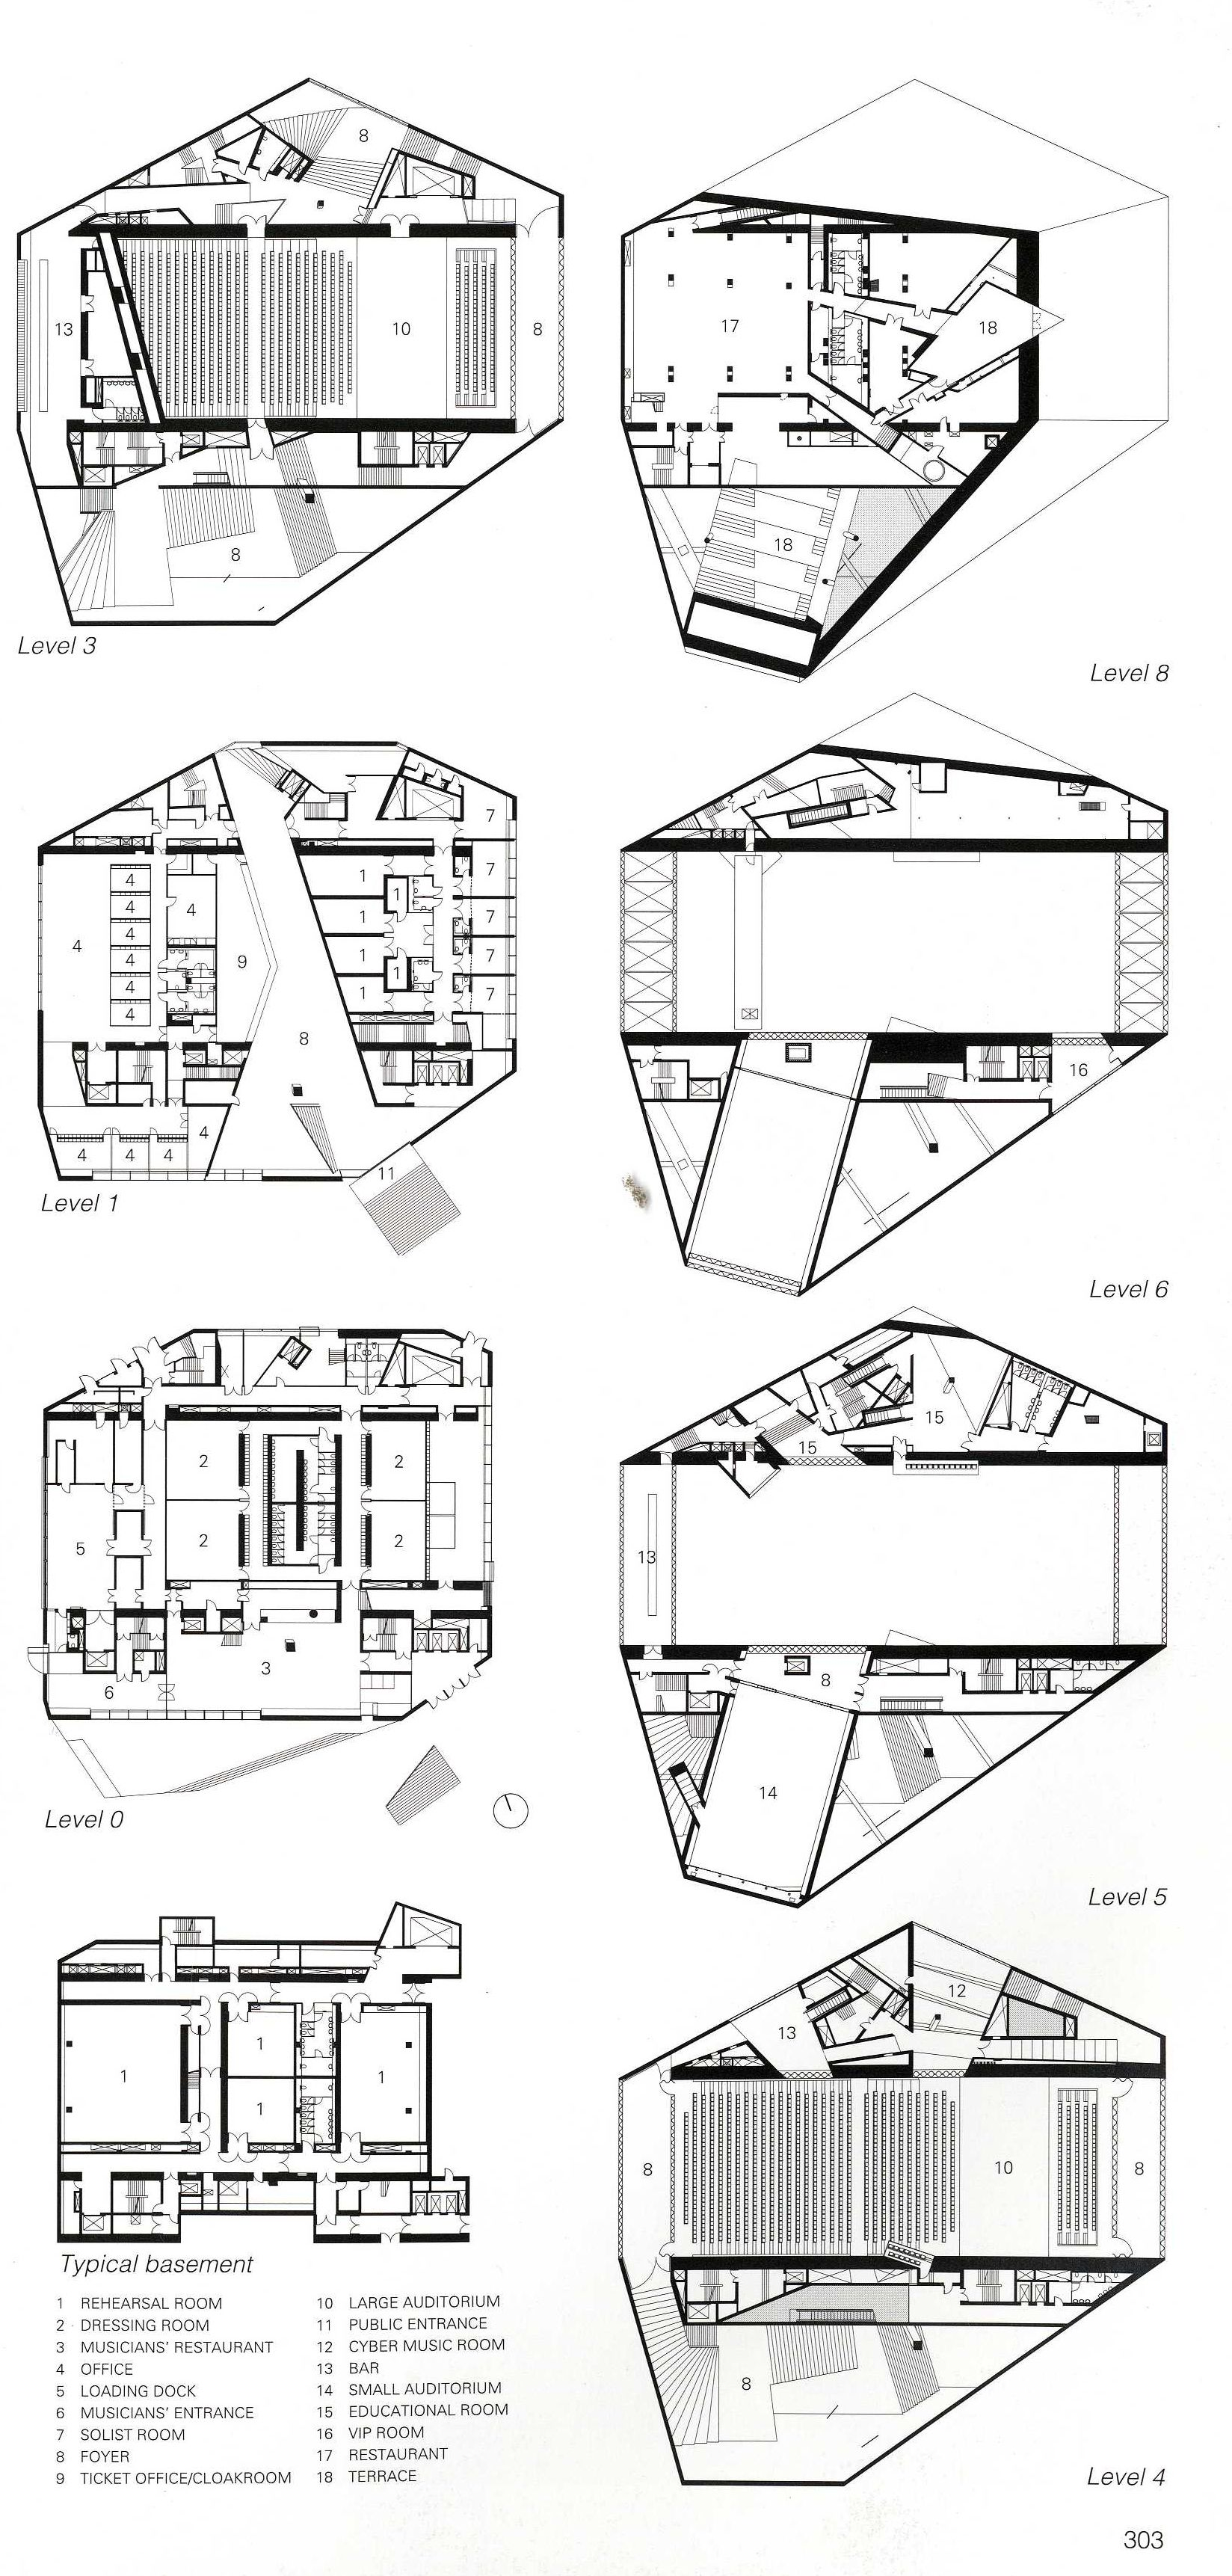 architectural plans concert hall architectural plans sections architectural plans concert hall